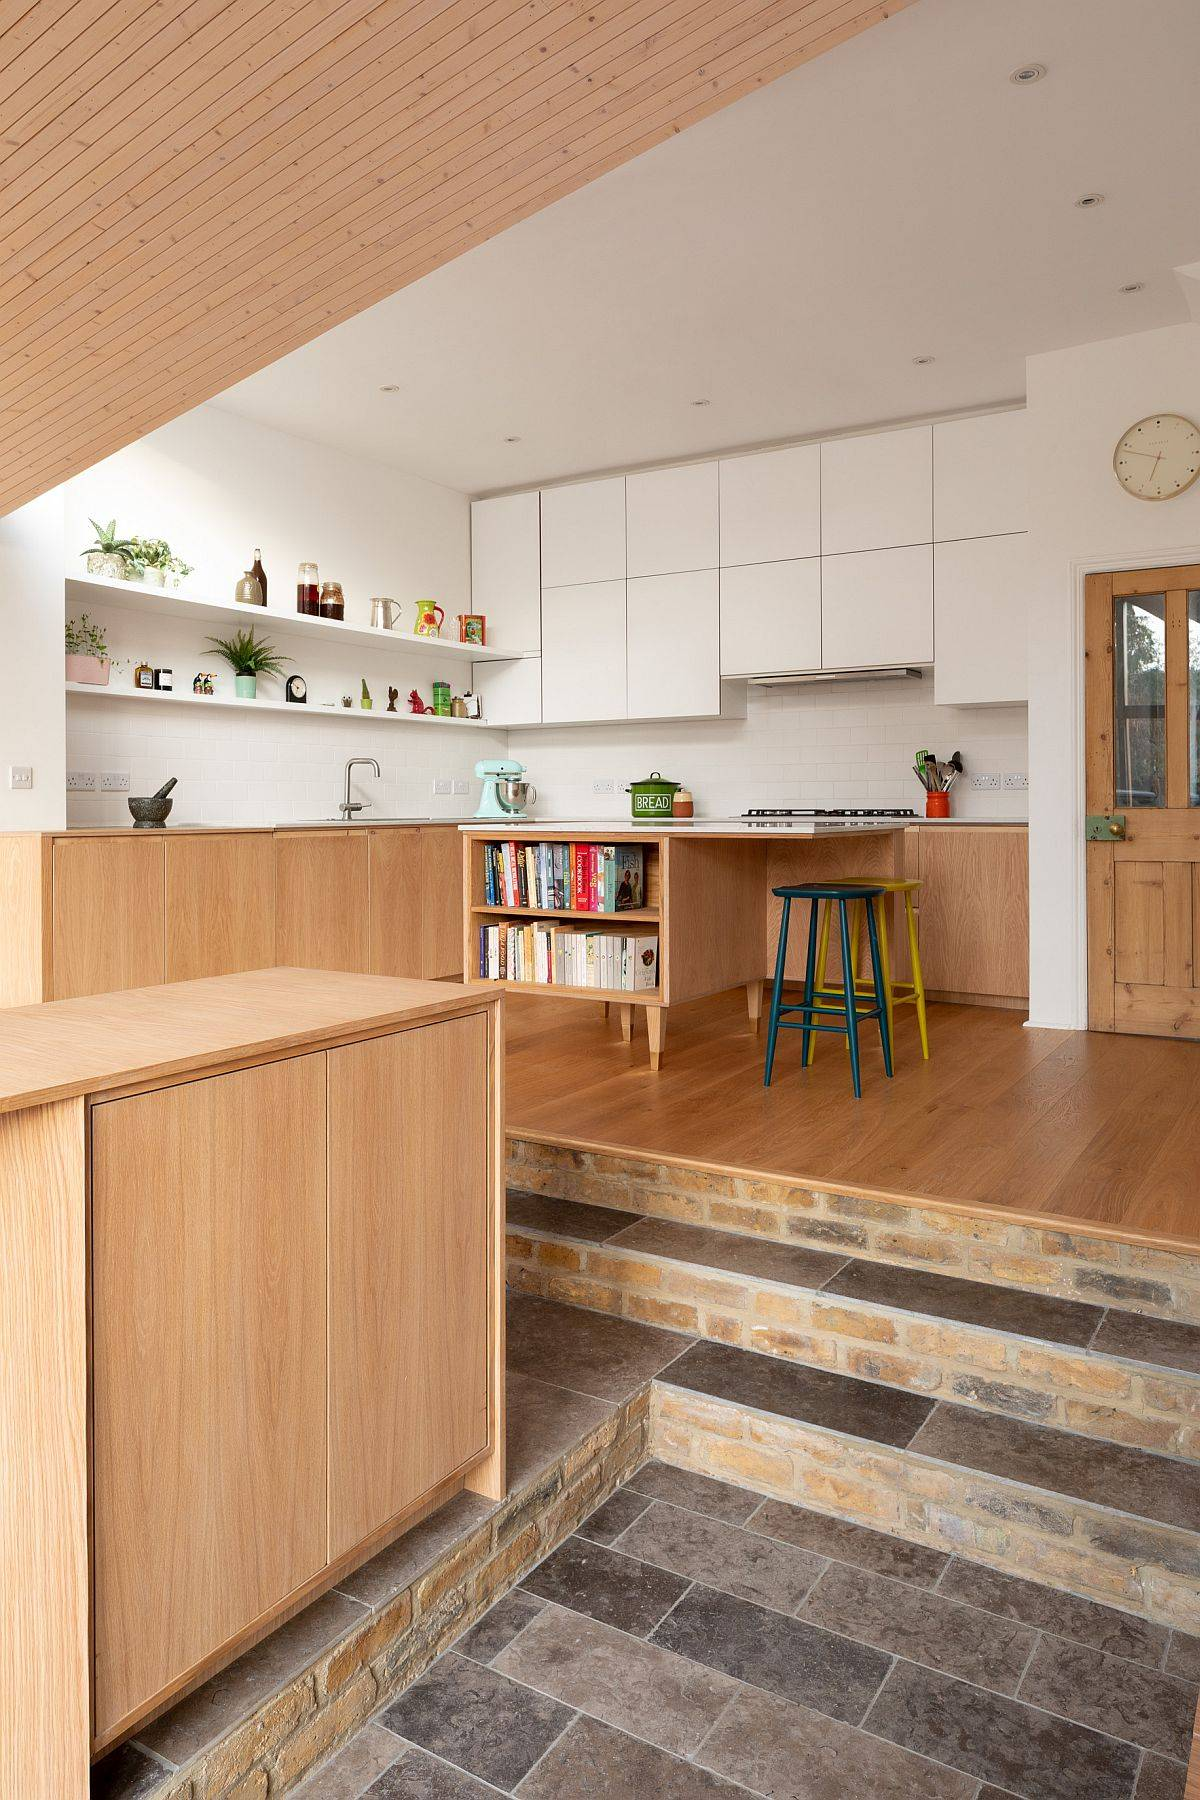 Multi-level-rear-extension-with-a-kitchen-dining-and-family-area-24228